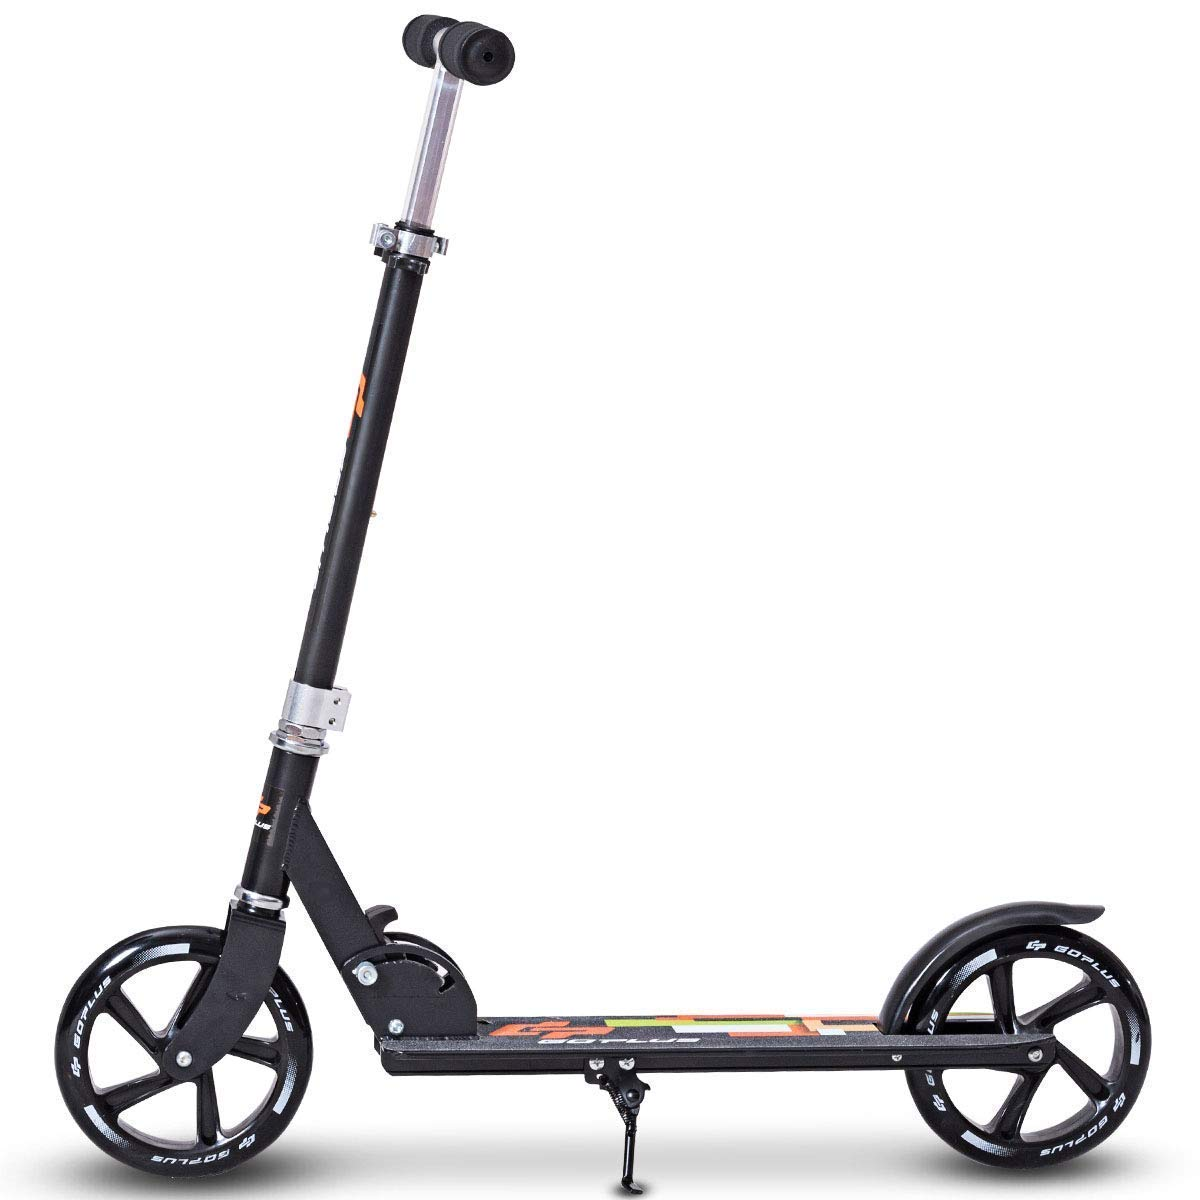 GYMAX Kick Scooter, Folding Big Wheel Scooter Deluxe Aluminum Glider Adjustable Height with Kickstand, for Adult Teen by GYMAX